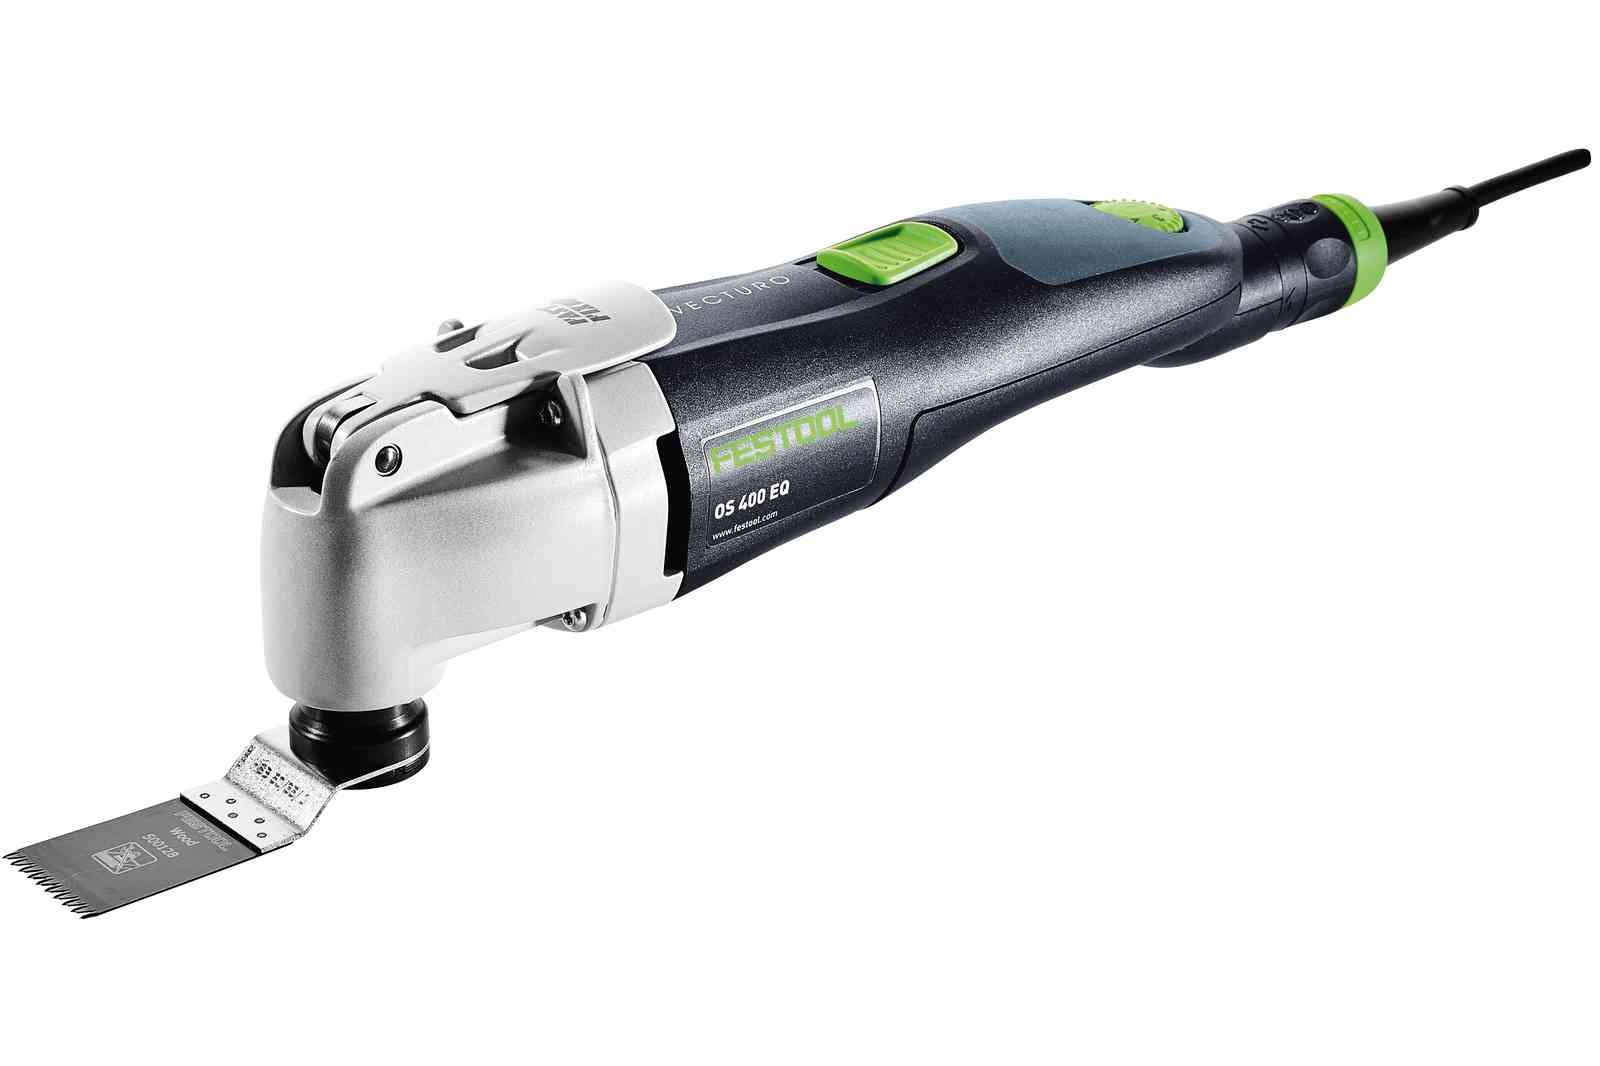 Festool Oscillators